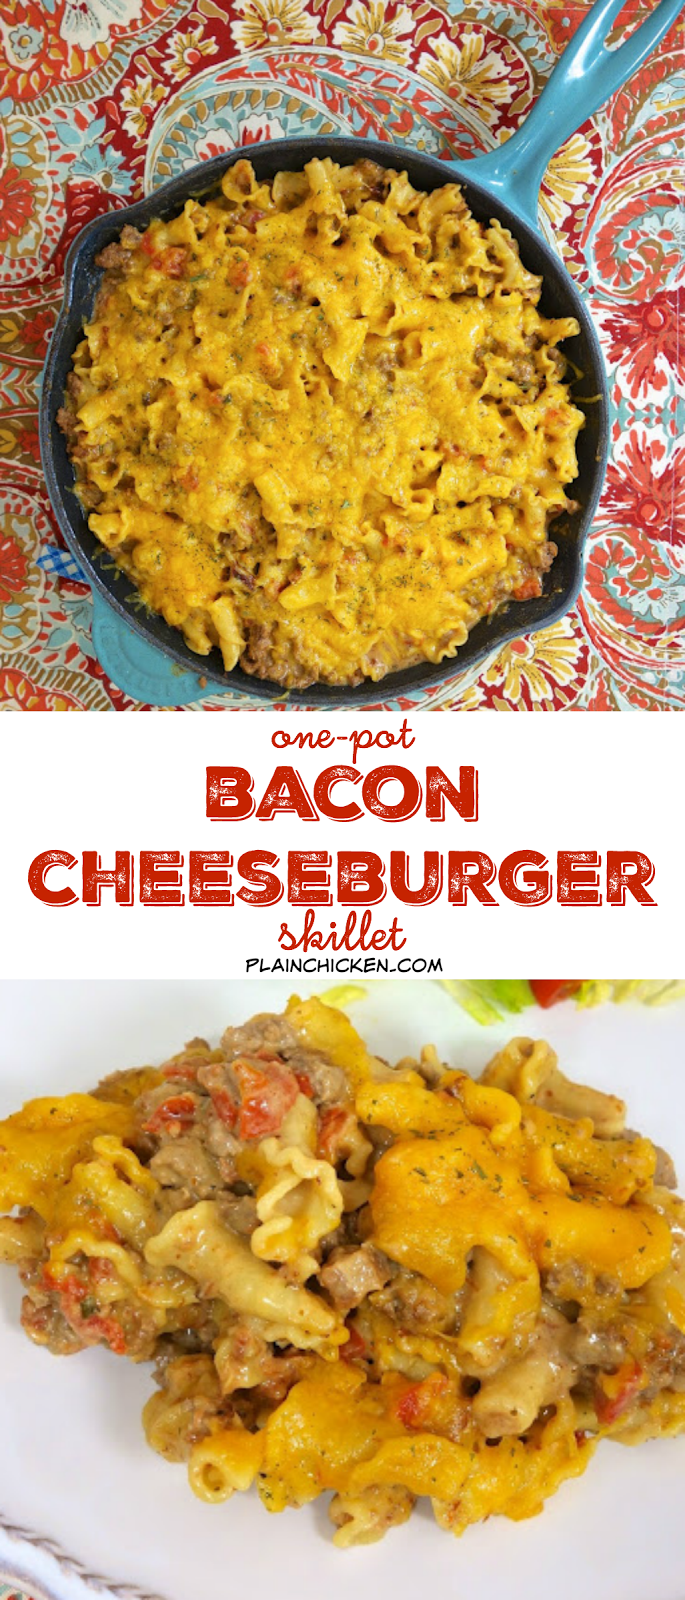 Bacon Cheeseburger Skillet {One-Pot} - everything cooks in the same pot, even the pasta! Hamburger, bacon, onion, beef broth, Rotel, cream cheese, pasta and cheddar cheese. Ready in 20 minutes!